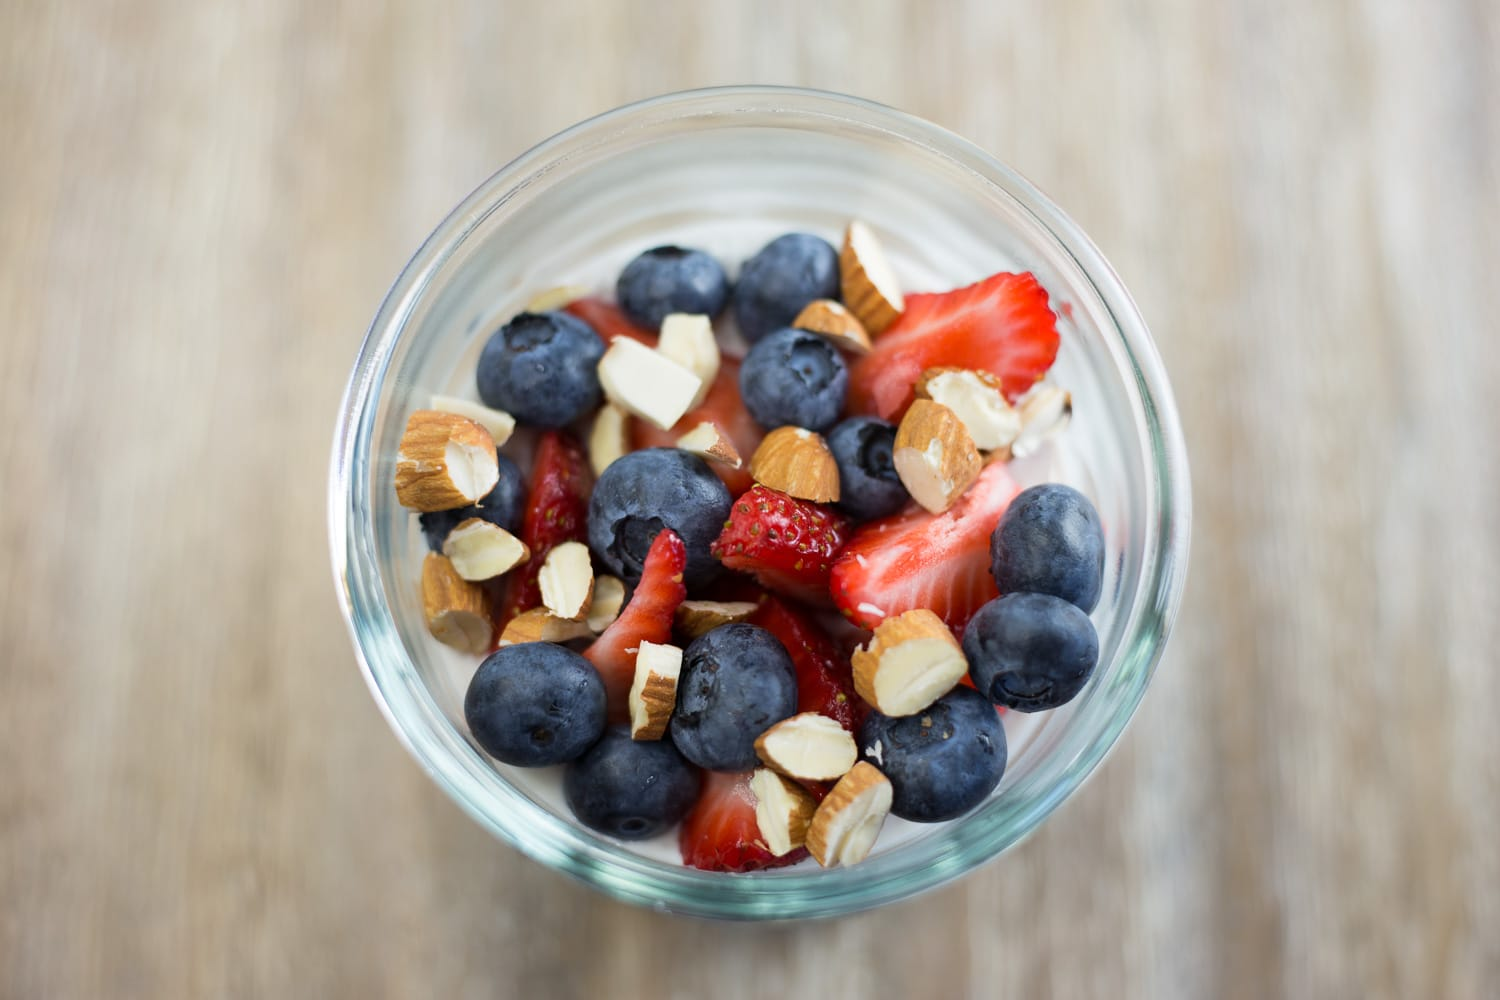 Chia seed pudding is an easy and healthy breakfast or snack that can be made ahead of time!